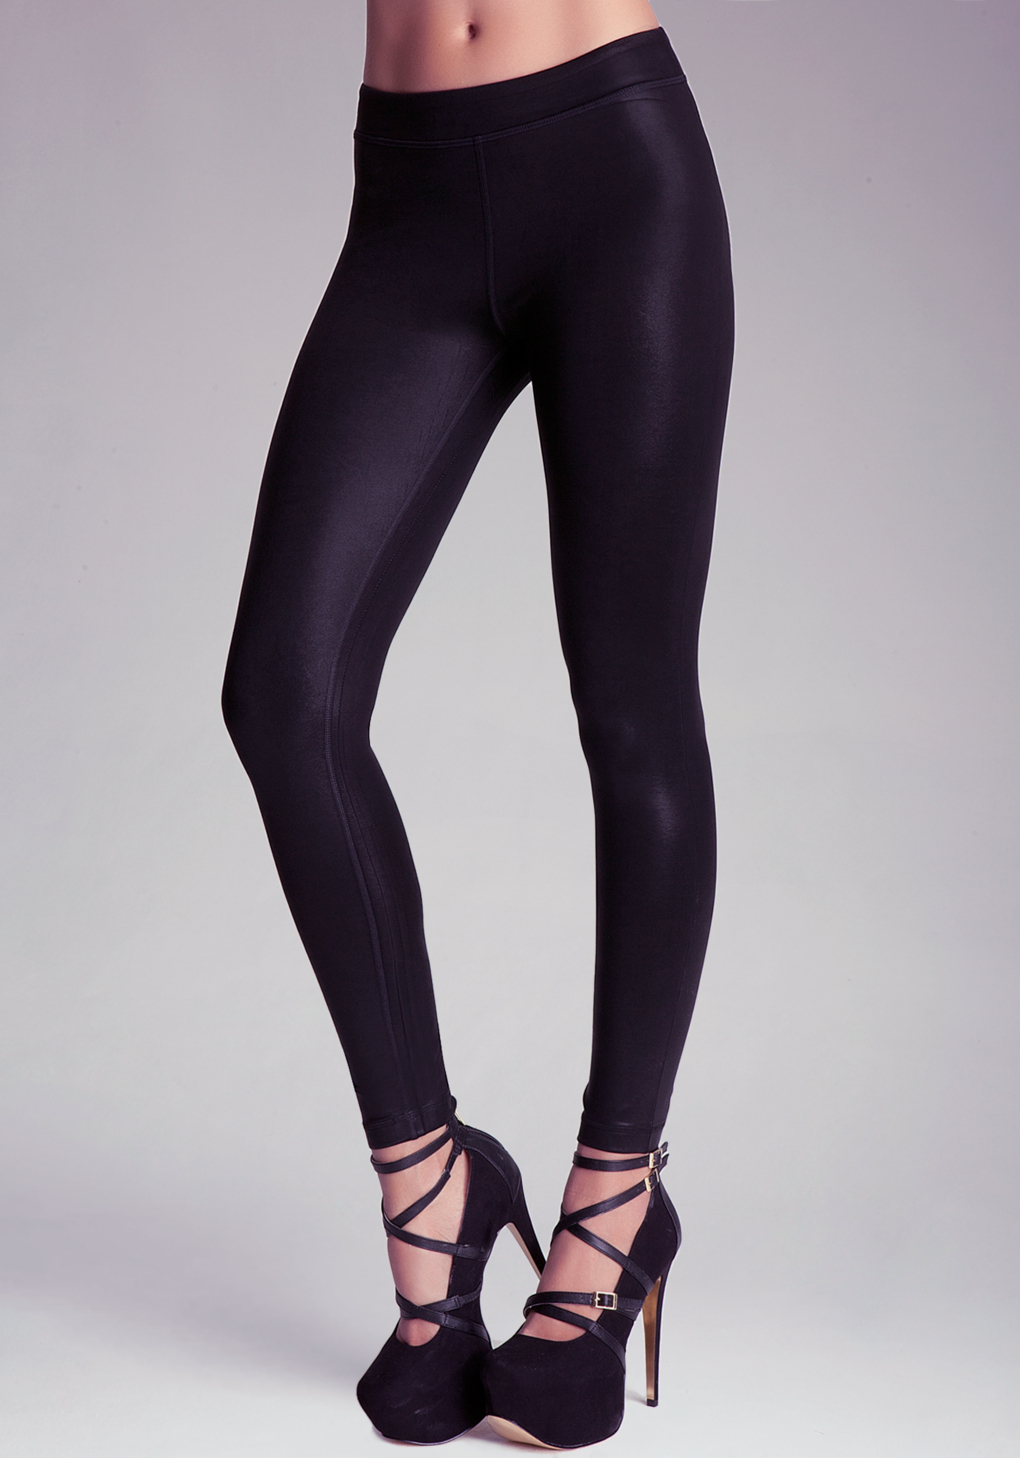 Shop eBay for great deals on bebe Women's Leggings. You'll find new or used products in bebe Women's Leggings on eBay. Free shipping on selected items.